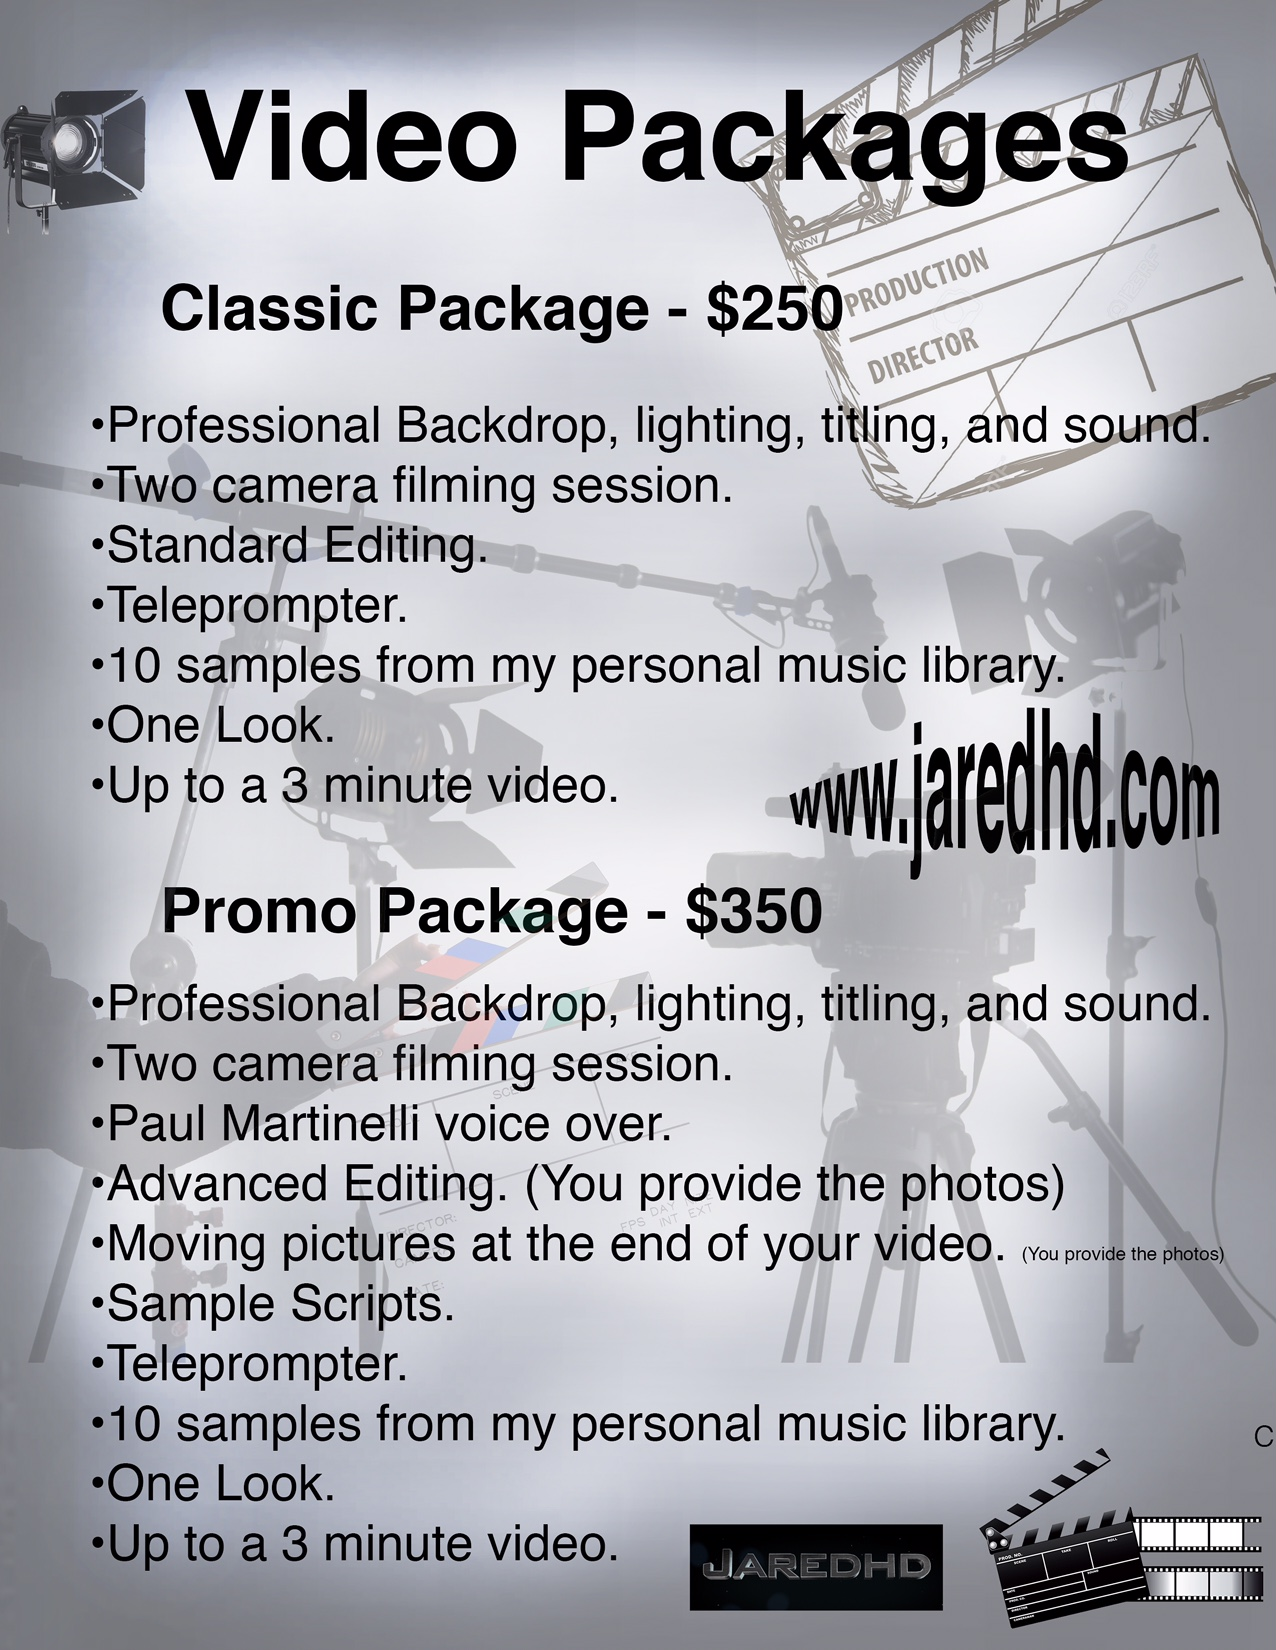 Classic Video Package Information